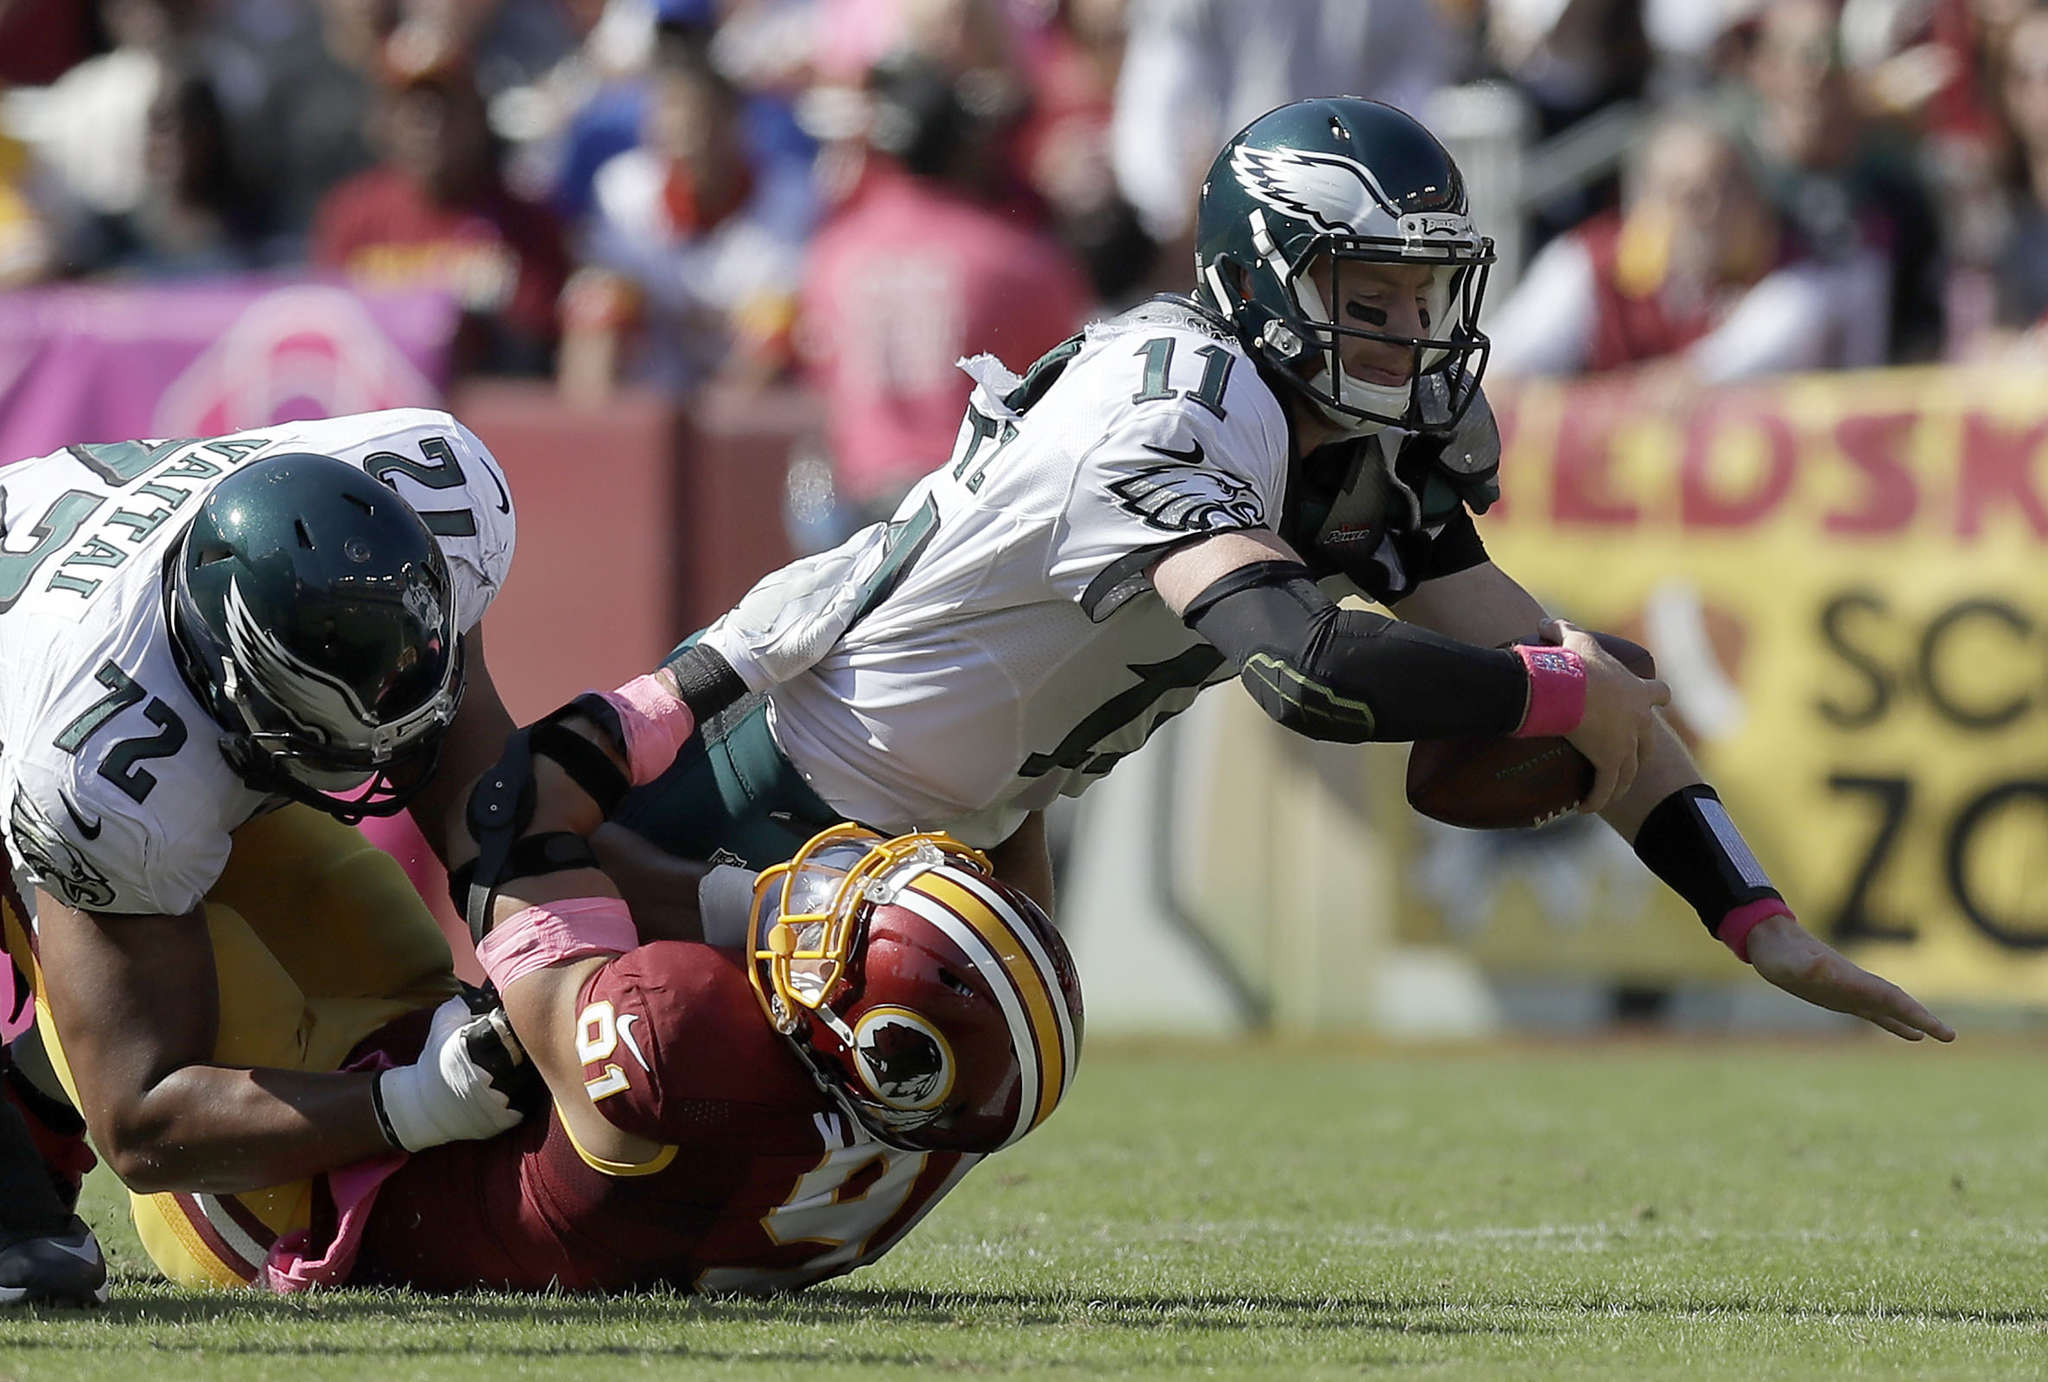 Carson Wentz is sacked by Ryan Kerrigan, who has beaten right tackle Halapoulivaati Vaitai. YONG KIM/Staff Photographer